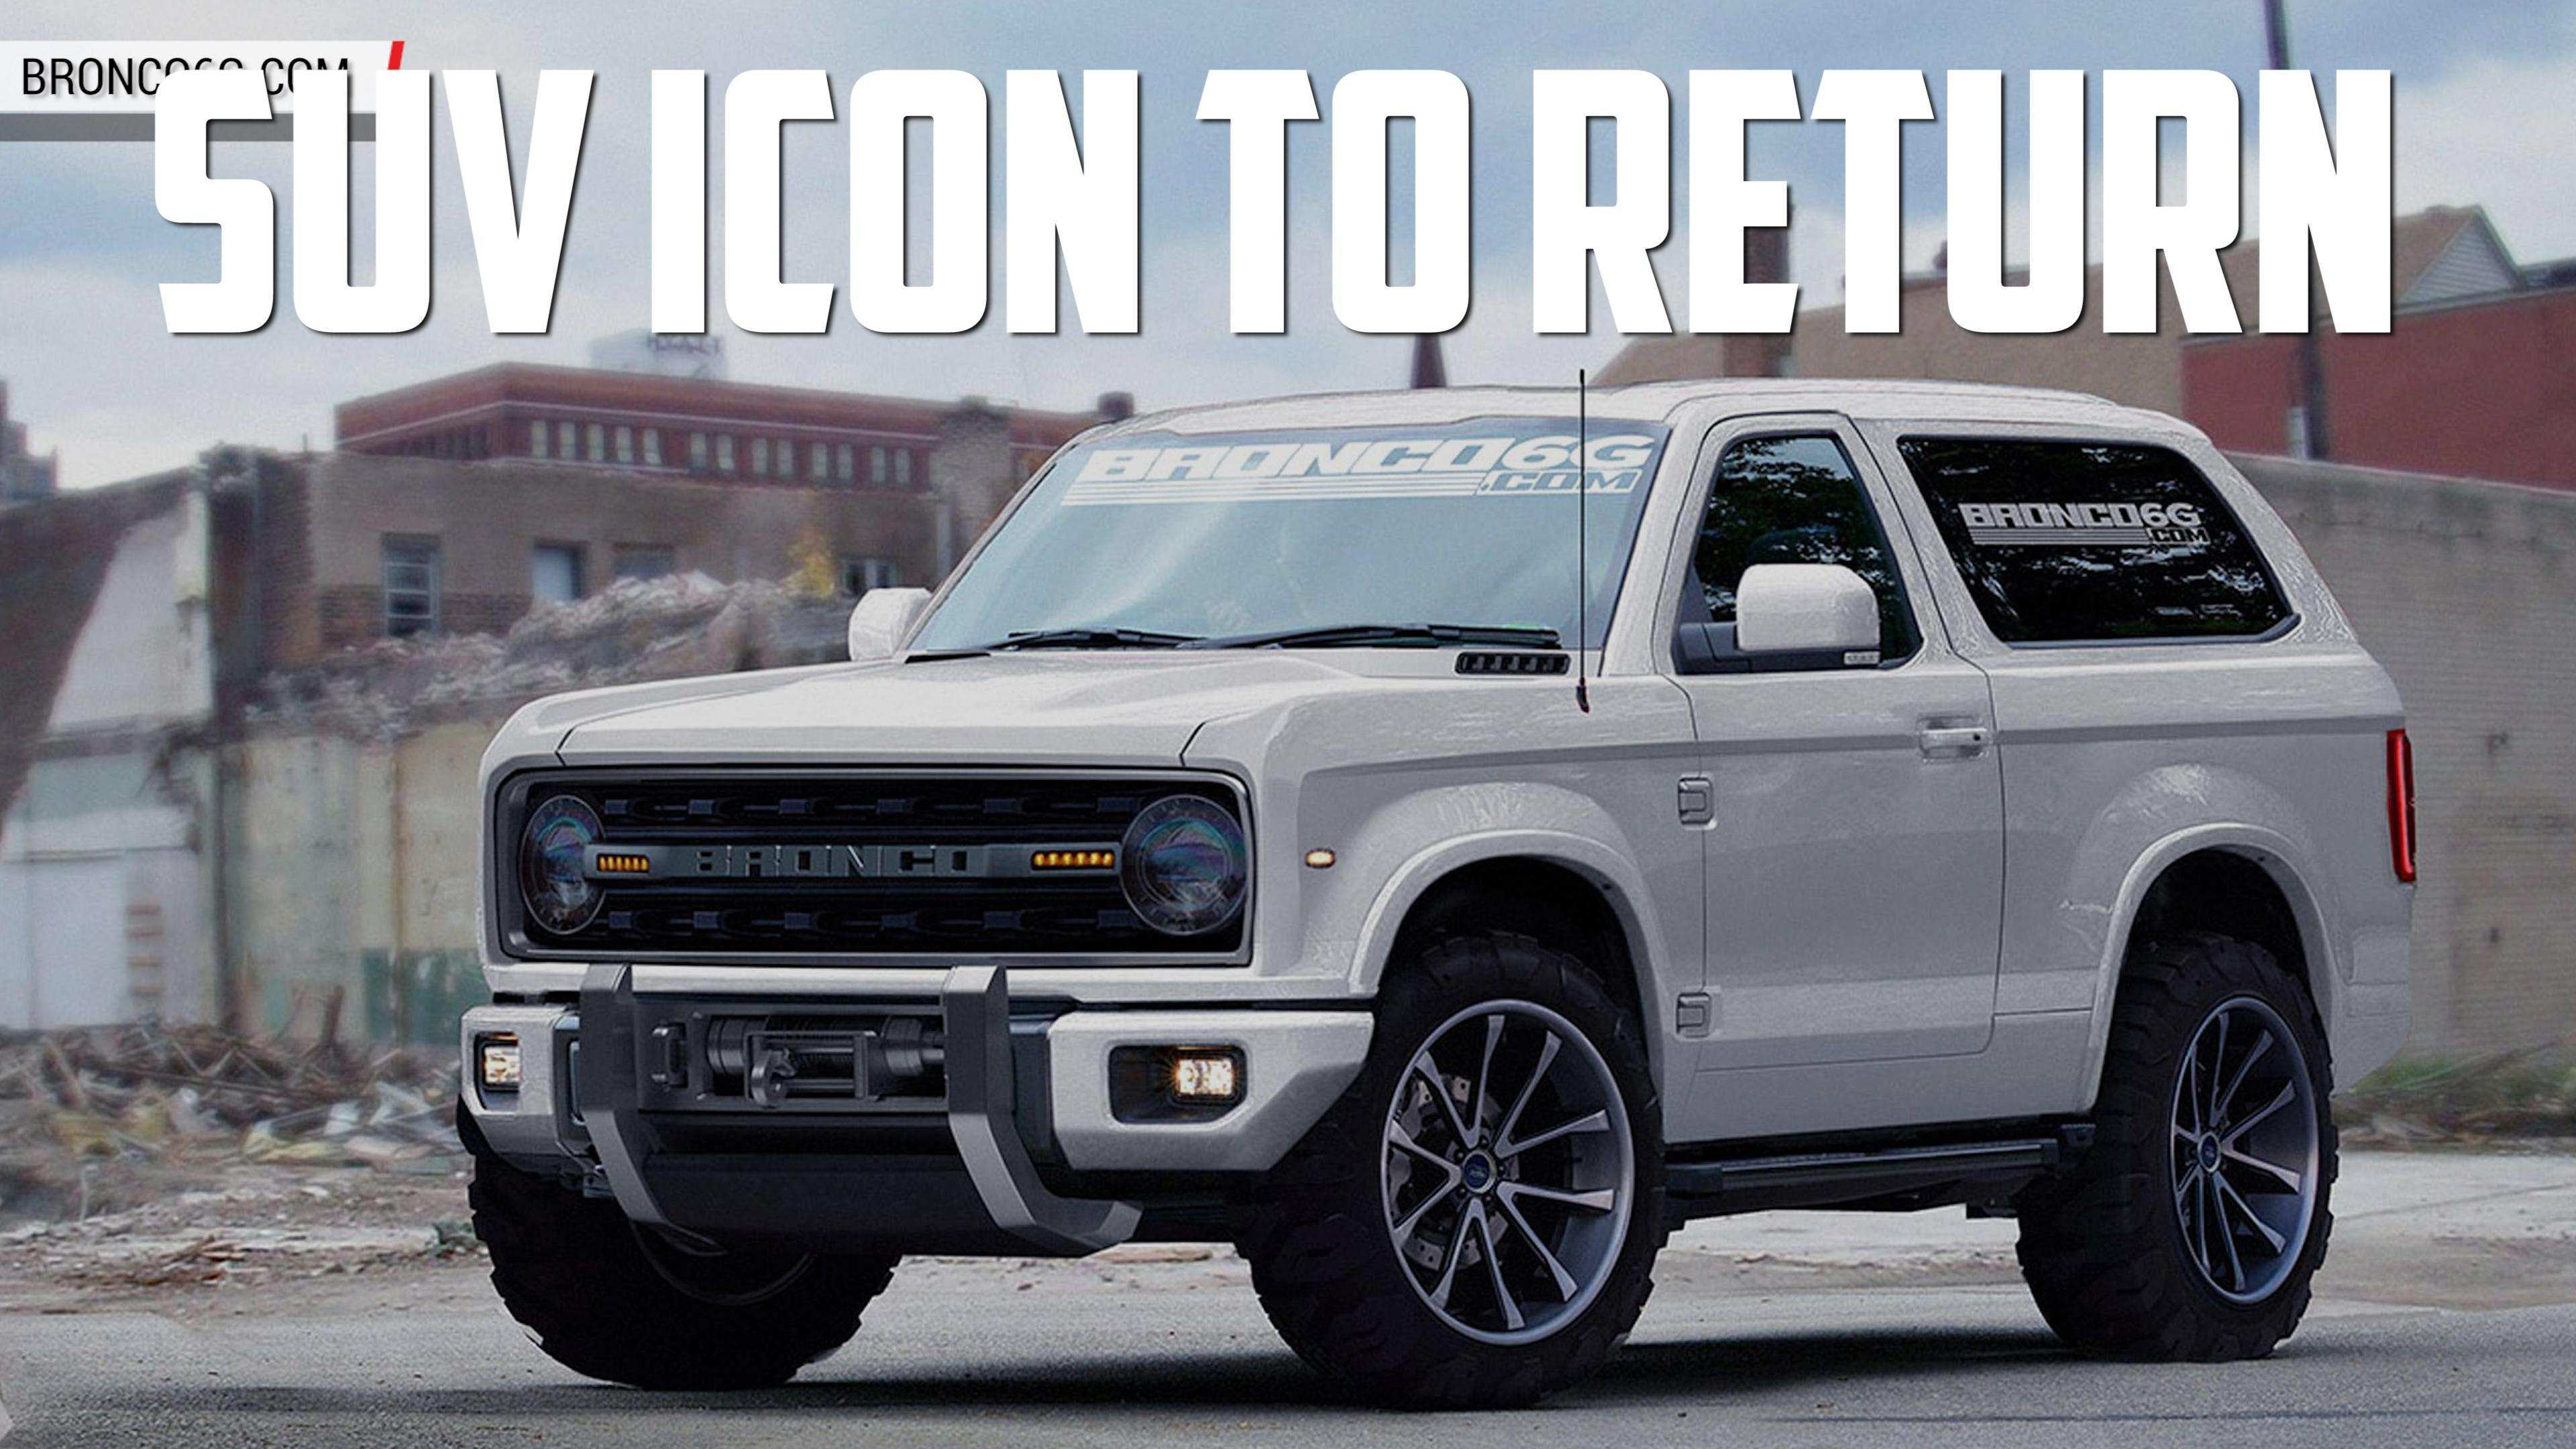 96 All New When Will The 2020 Ford Bronco Be Released Price And Release Date